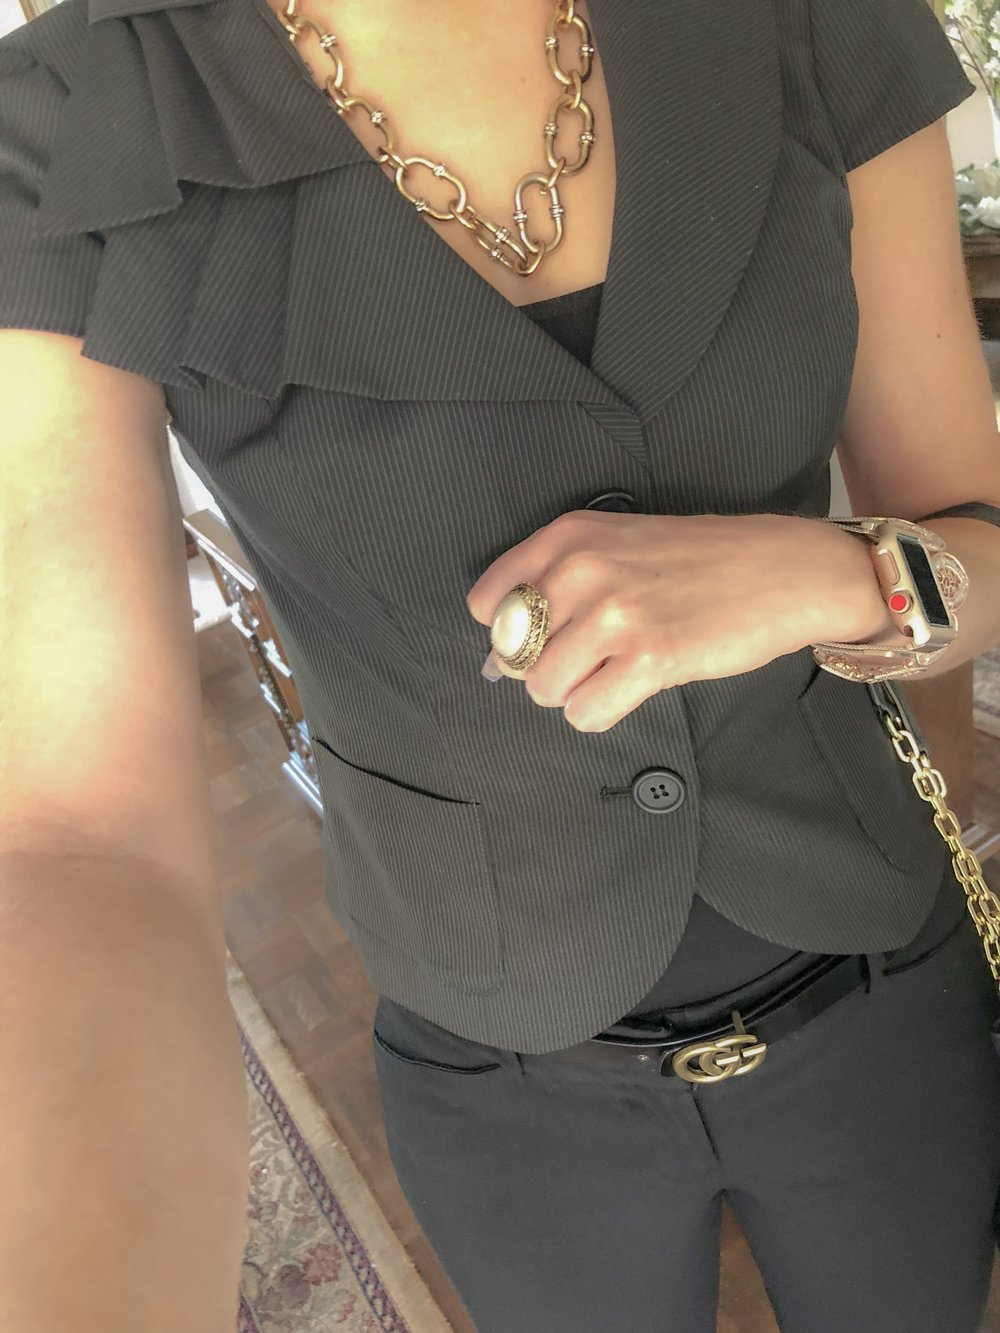 Wore this cute short sleeve blazer with a ruffle with a Gucci belt for a day of meetings at work!